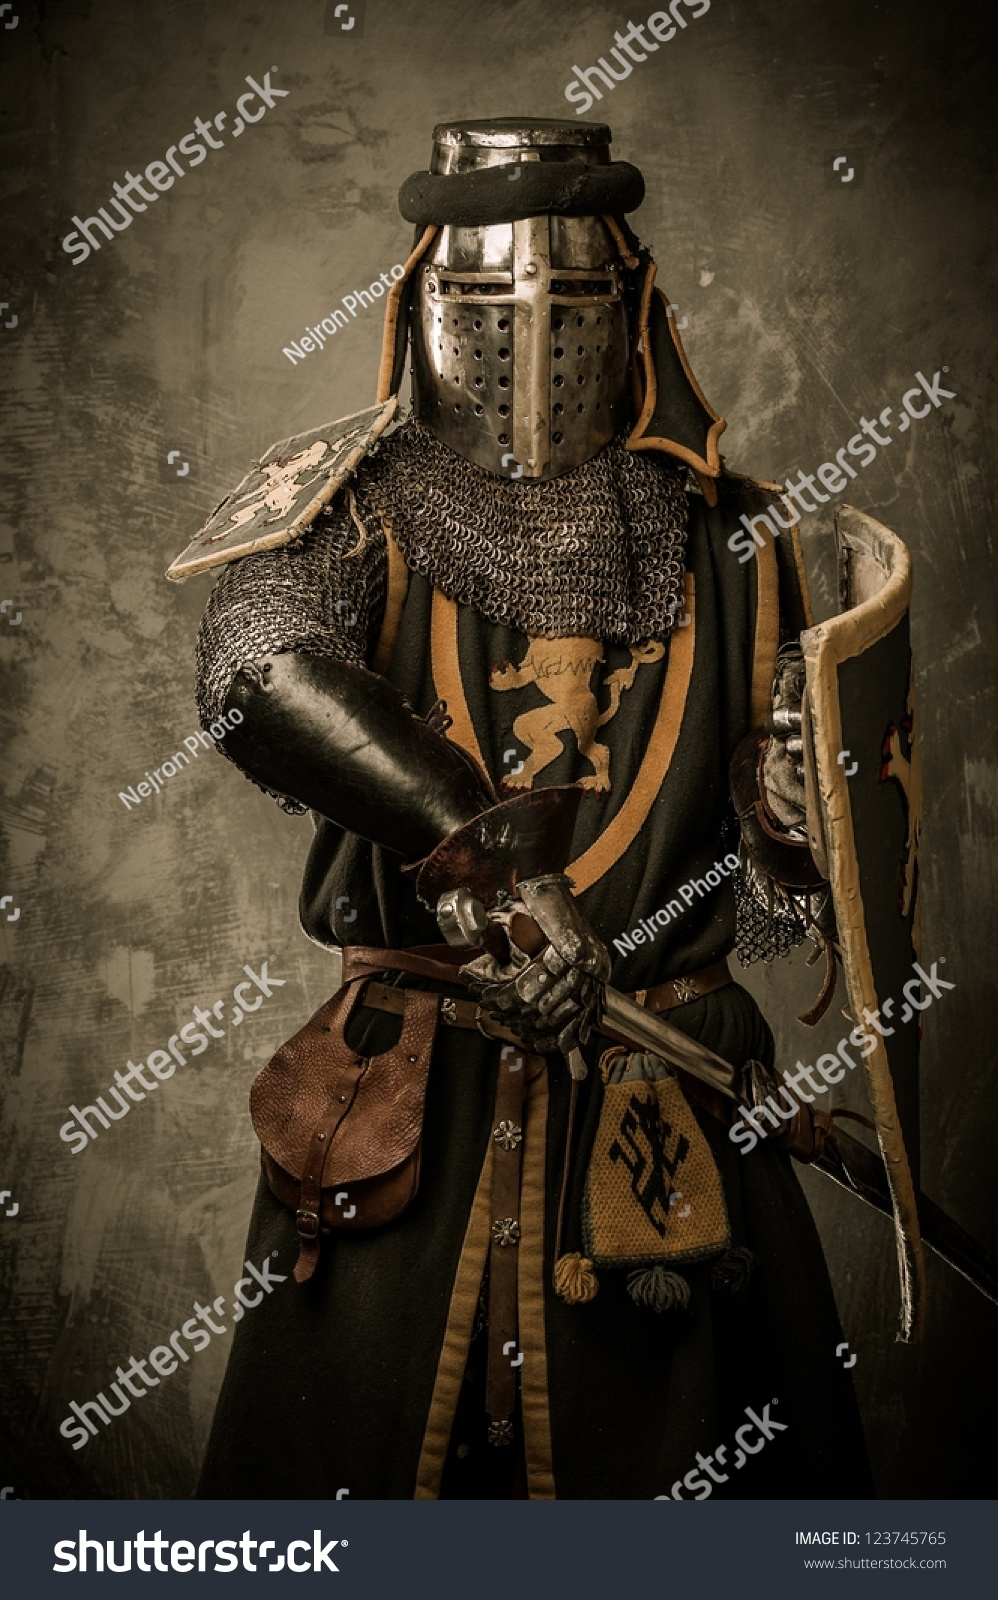 Knight With Sword And Shield Stock Image - Image of coat ... |Knight Sword And Shield